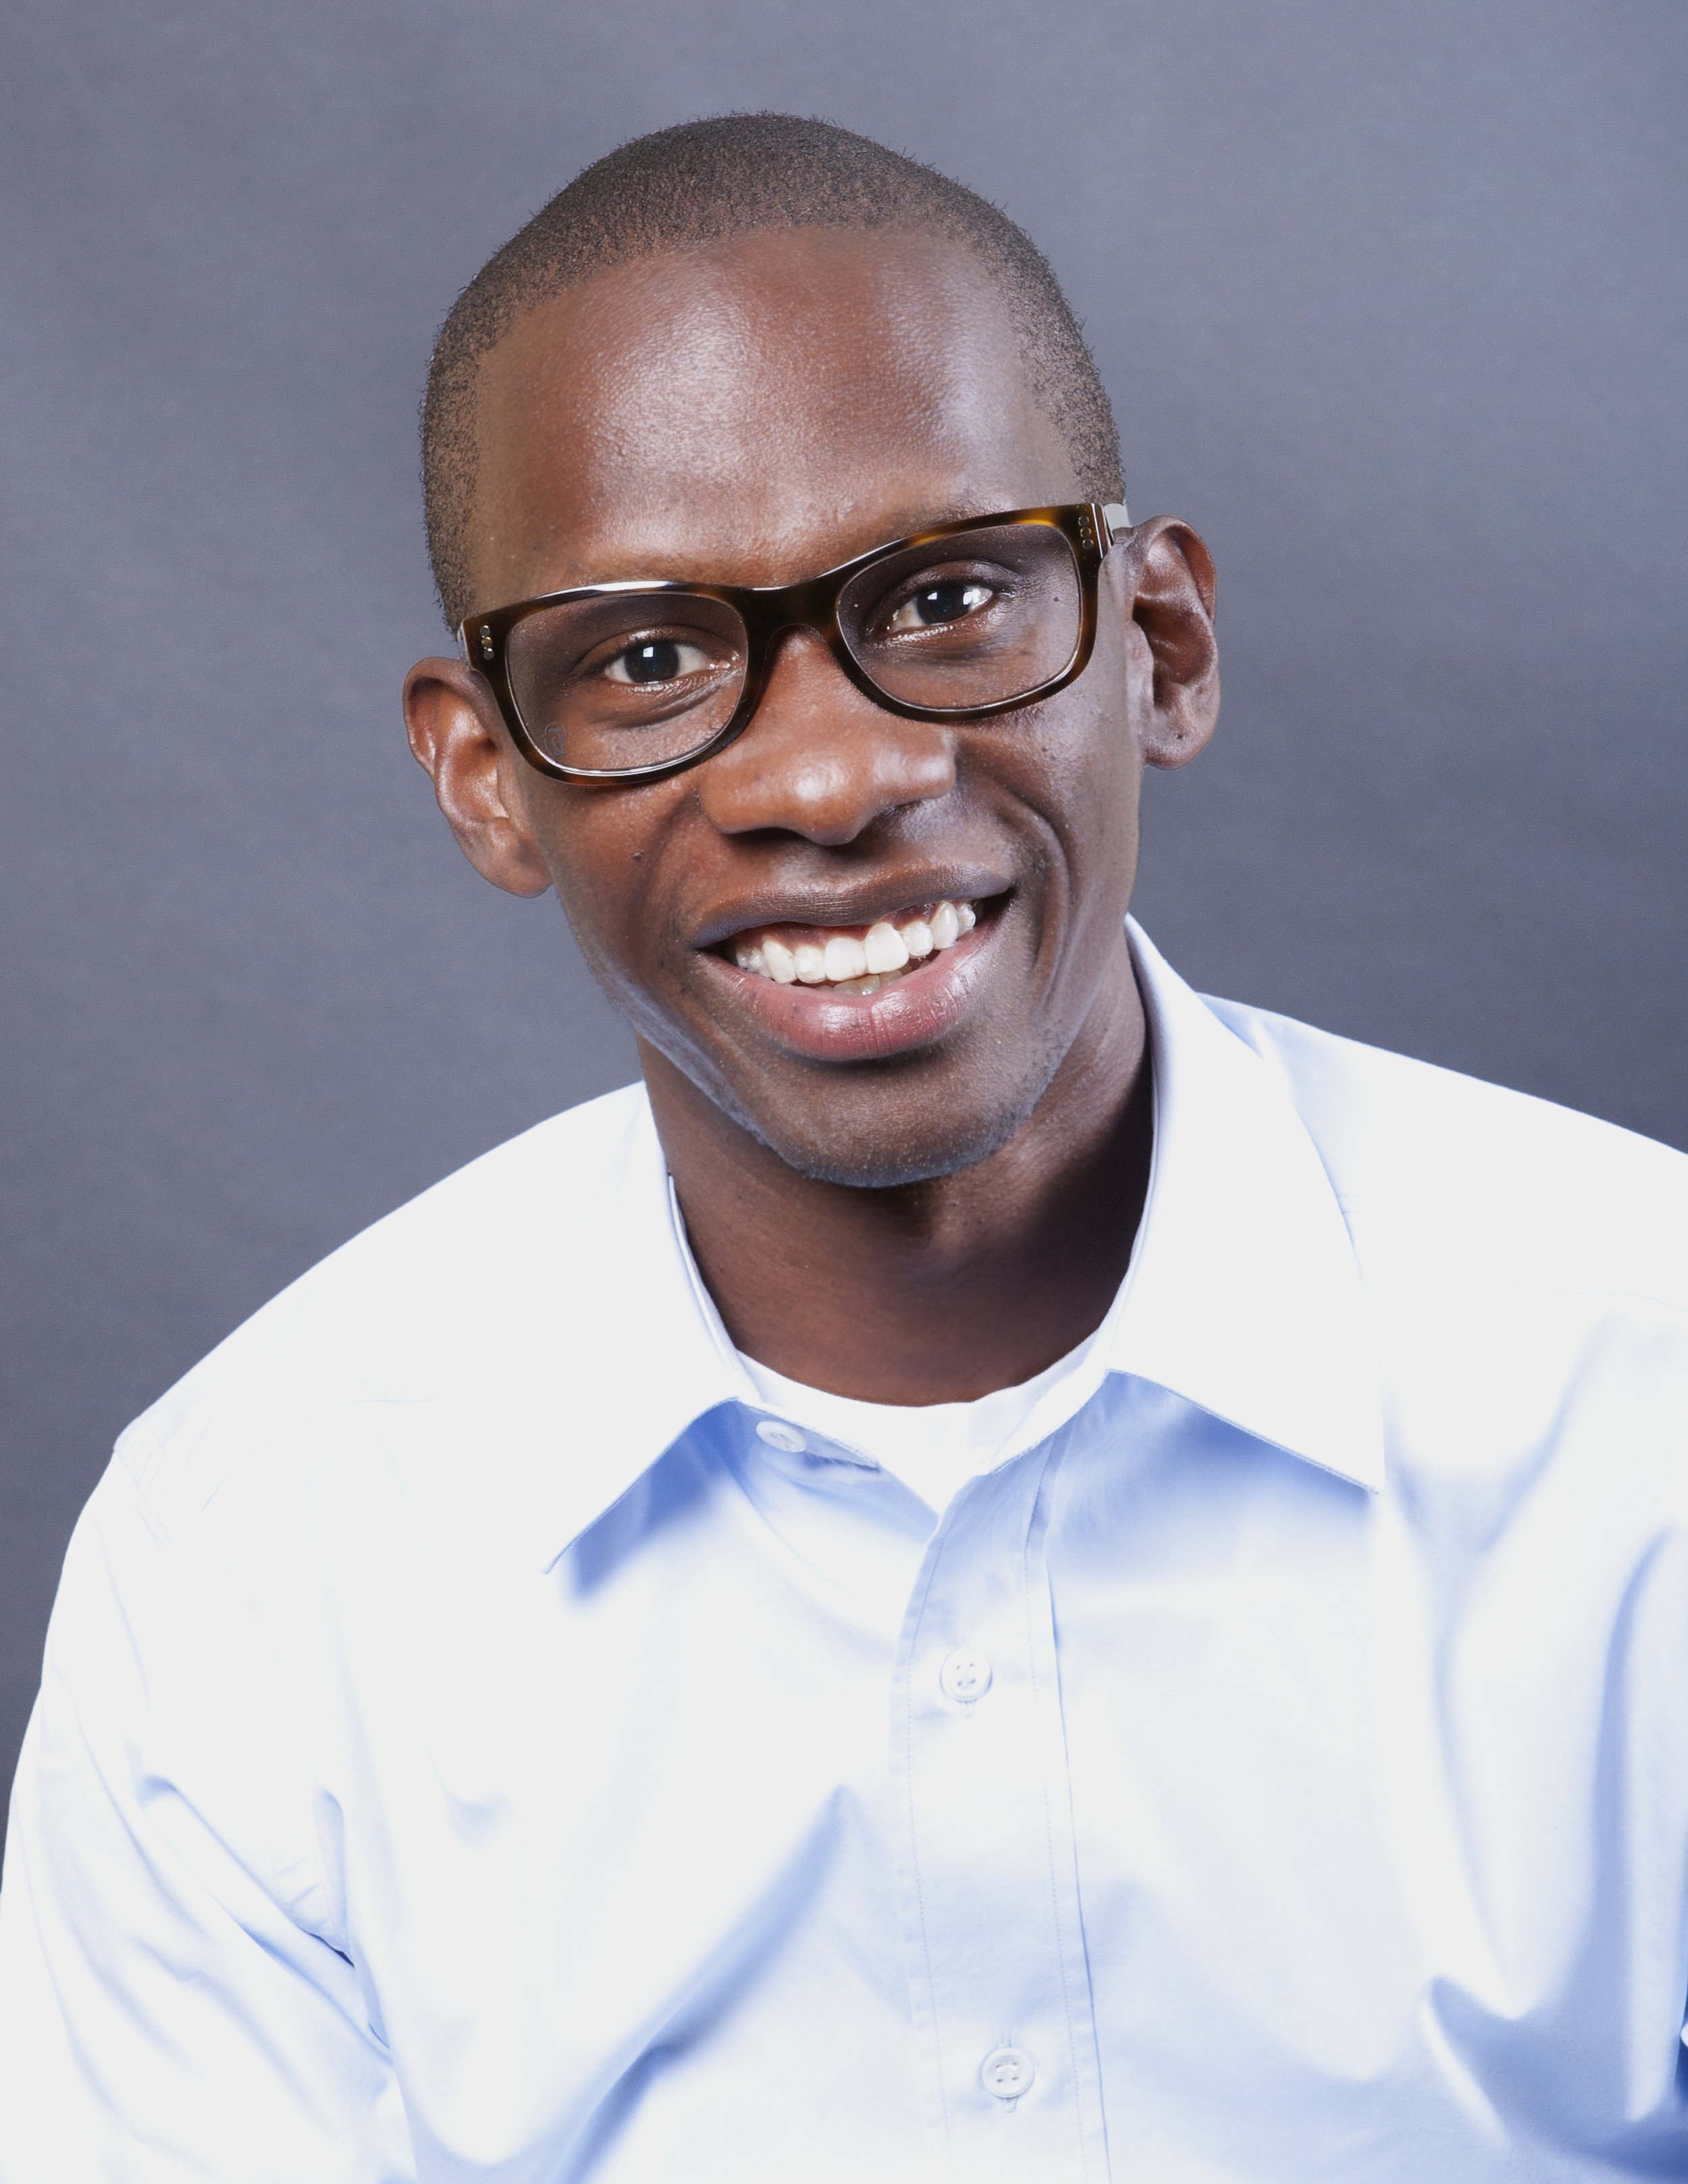 TROY CARTER HEADSHOT 2.jpg